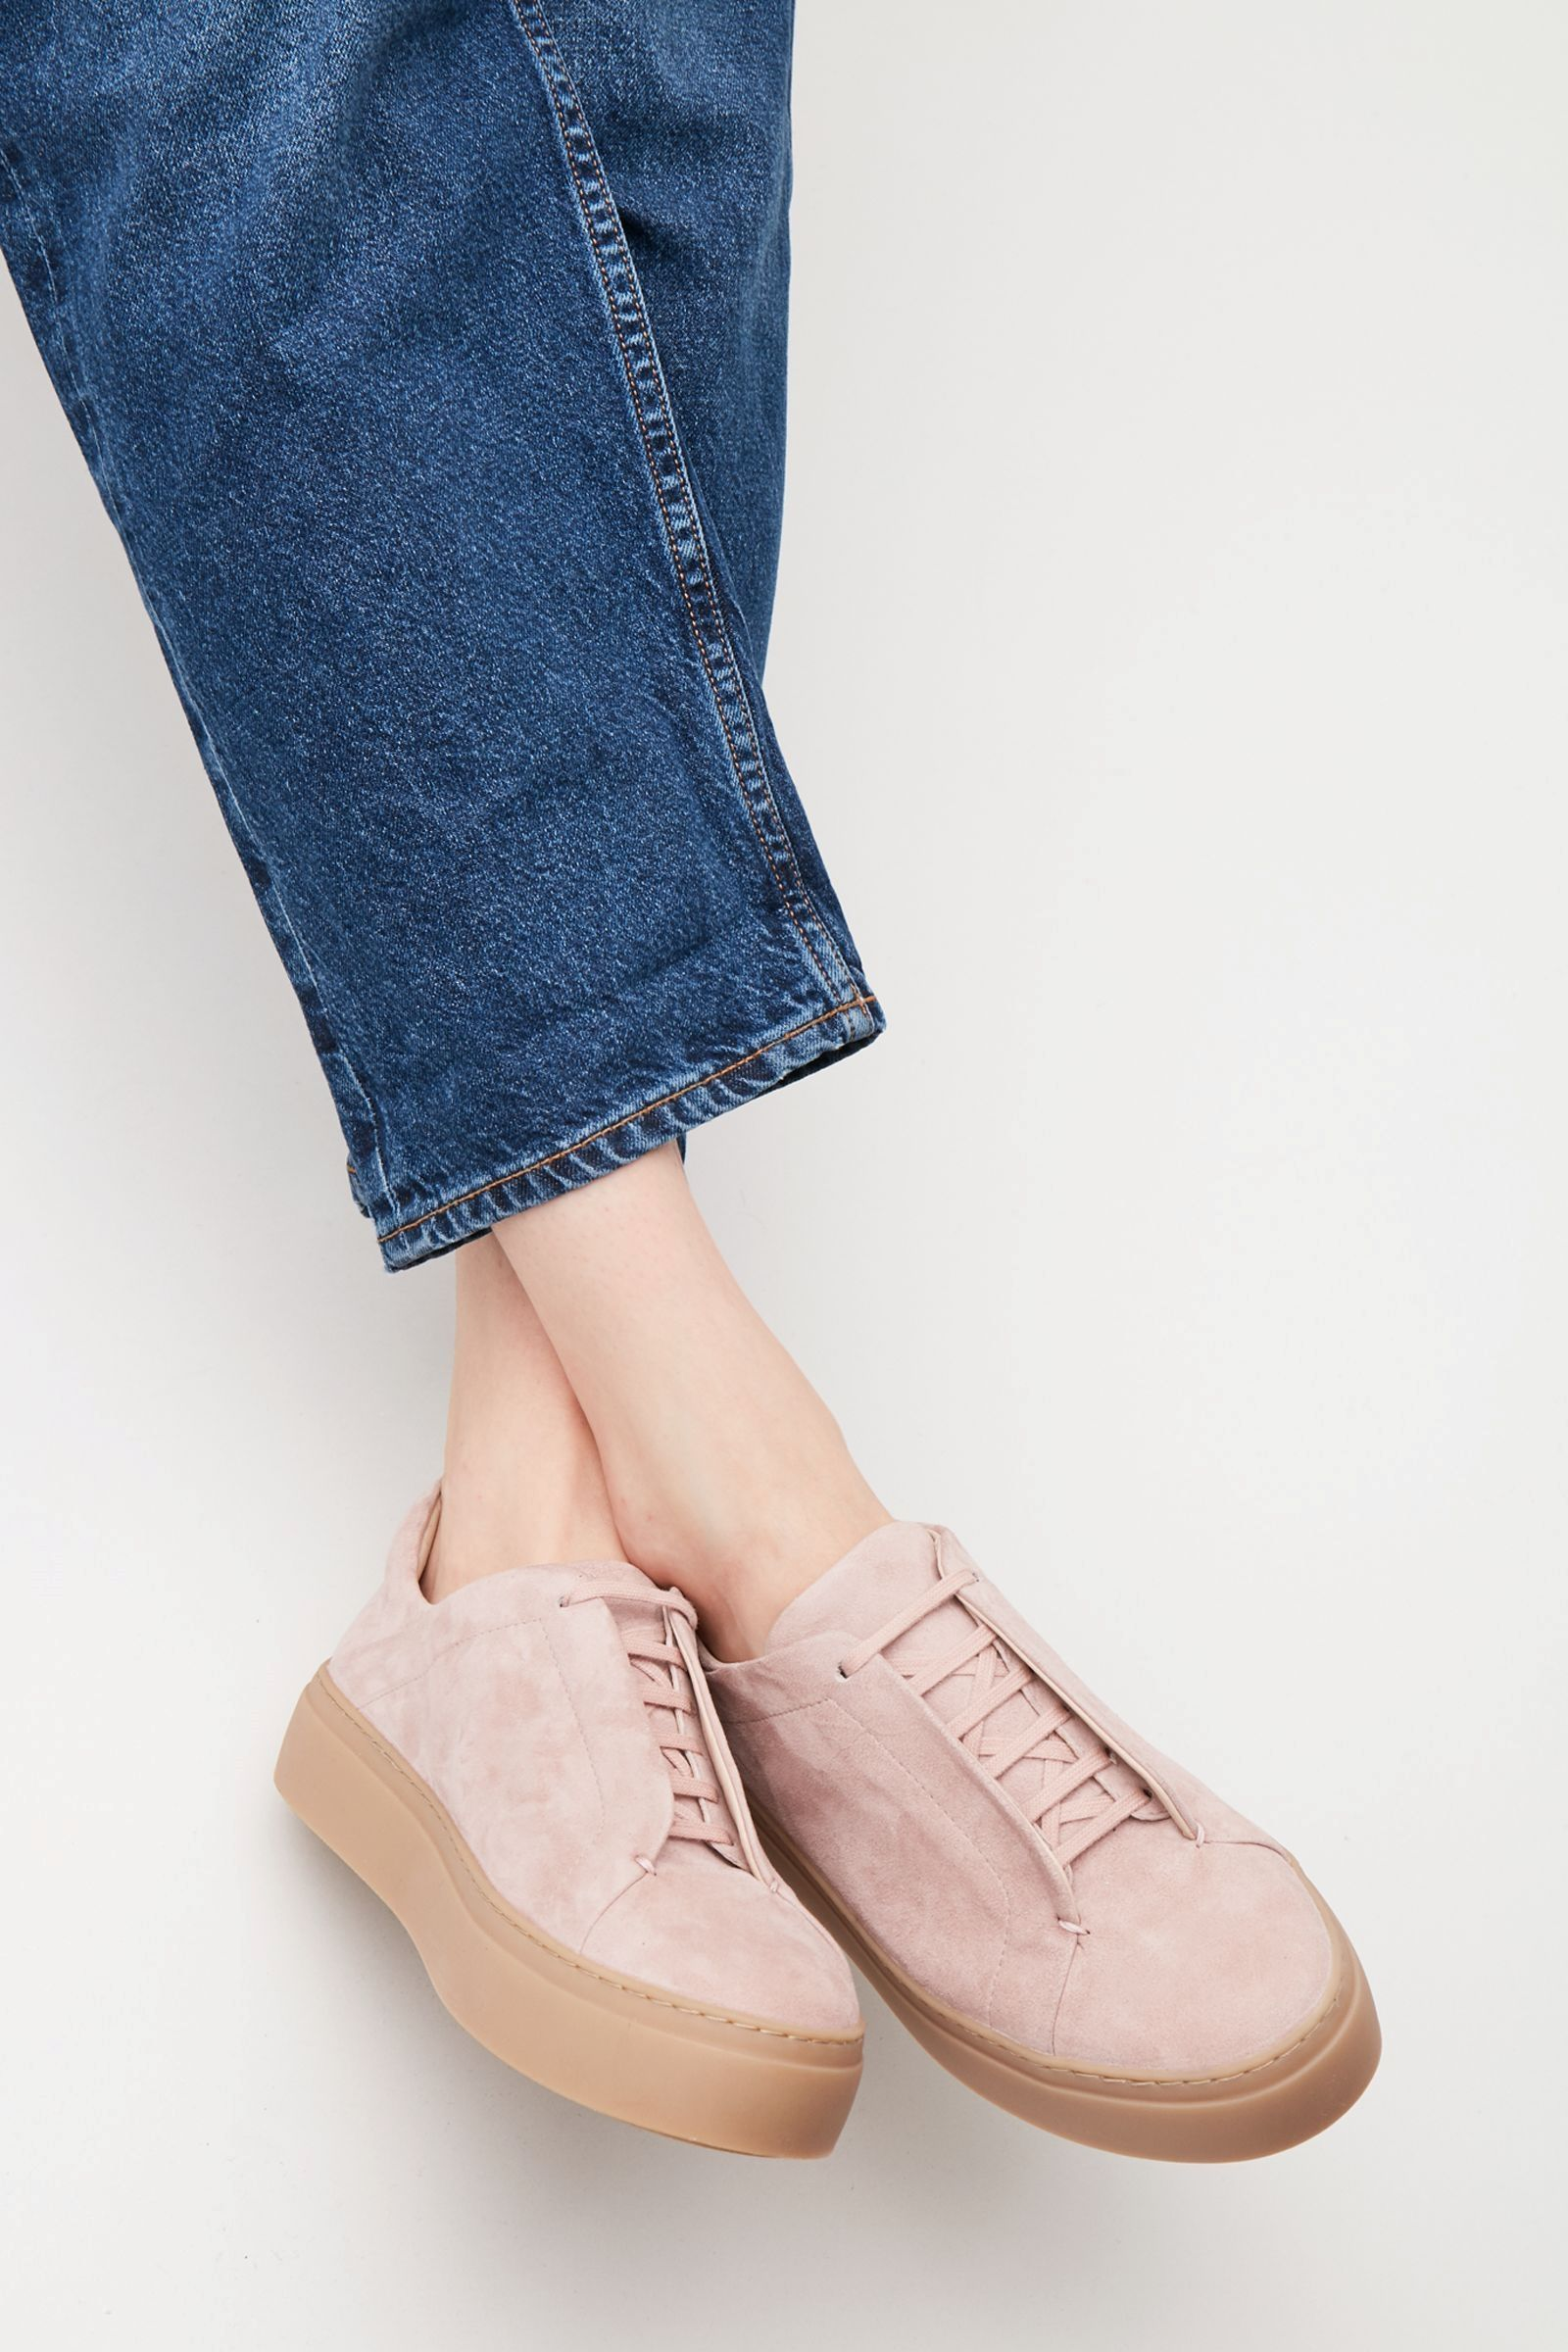 55765d3afc1d COS image 8 of Sneakers with hidden laces in Pink | shoes | Shoes ...